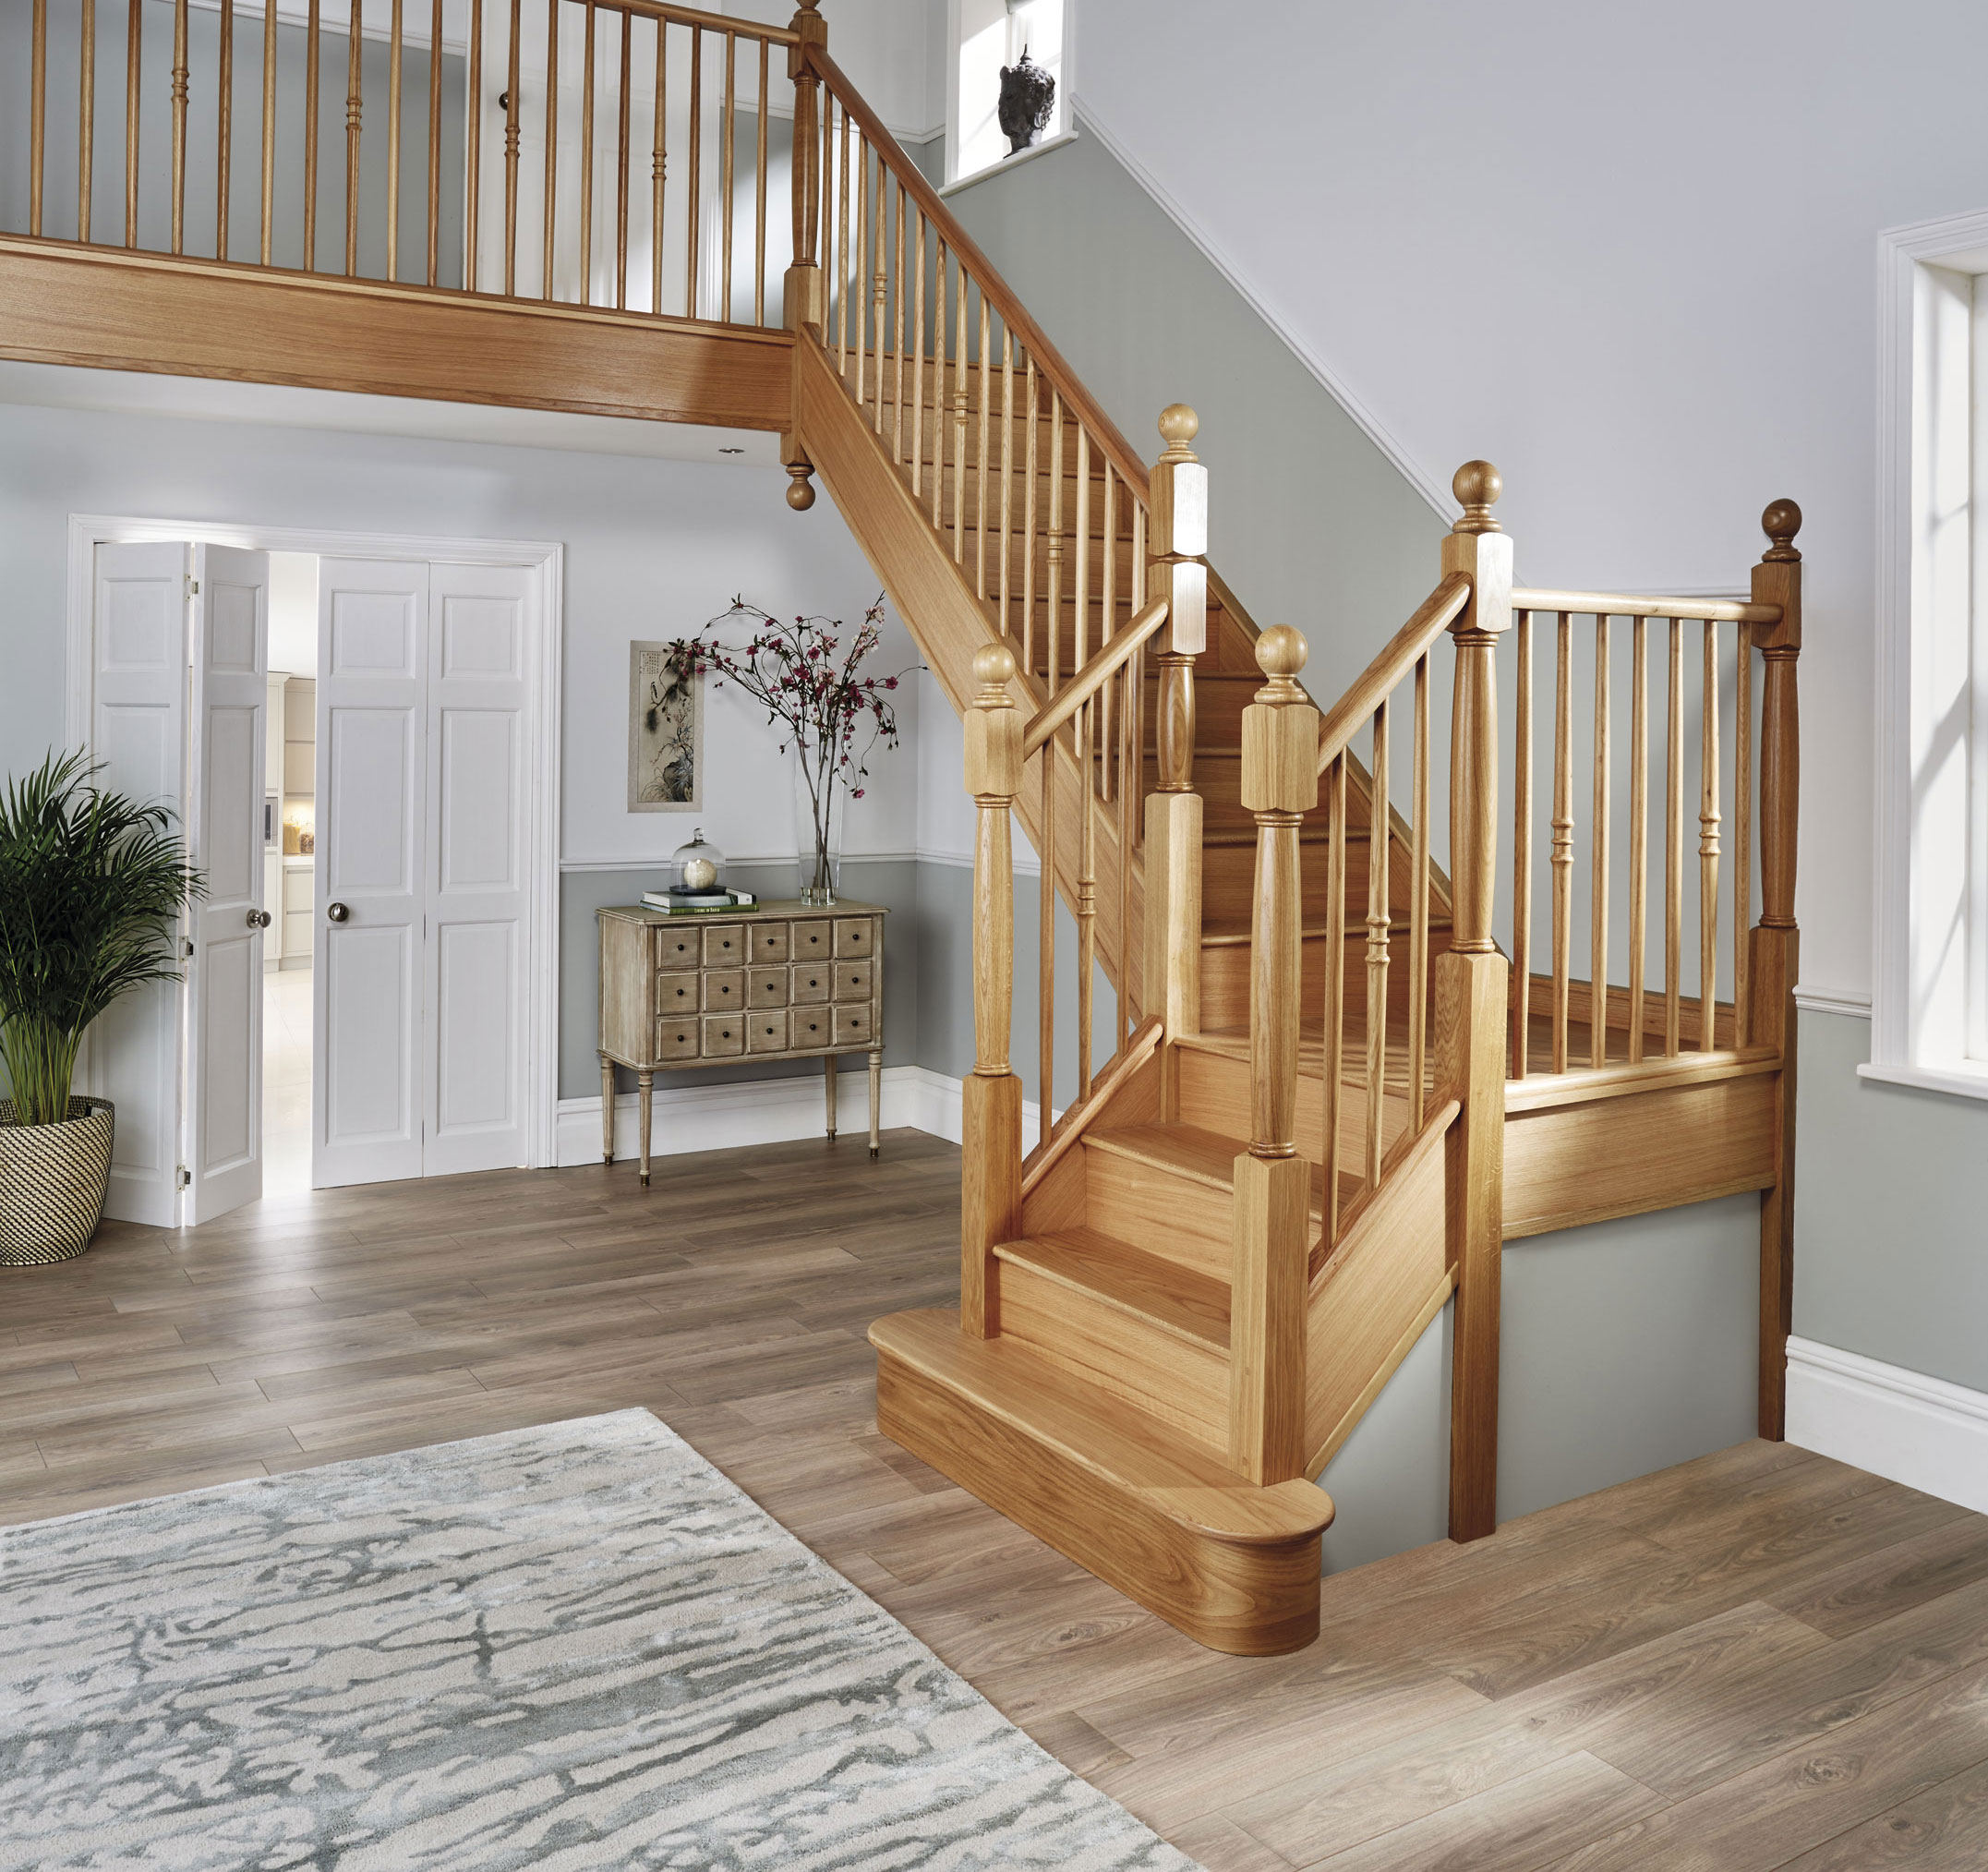 14 Staircases Design Ideas: Oak Staircase Design